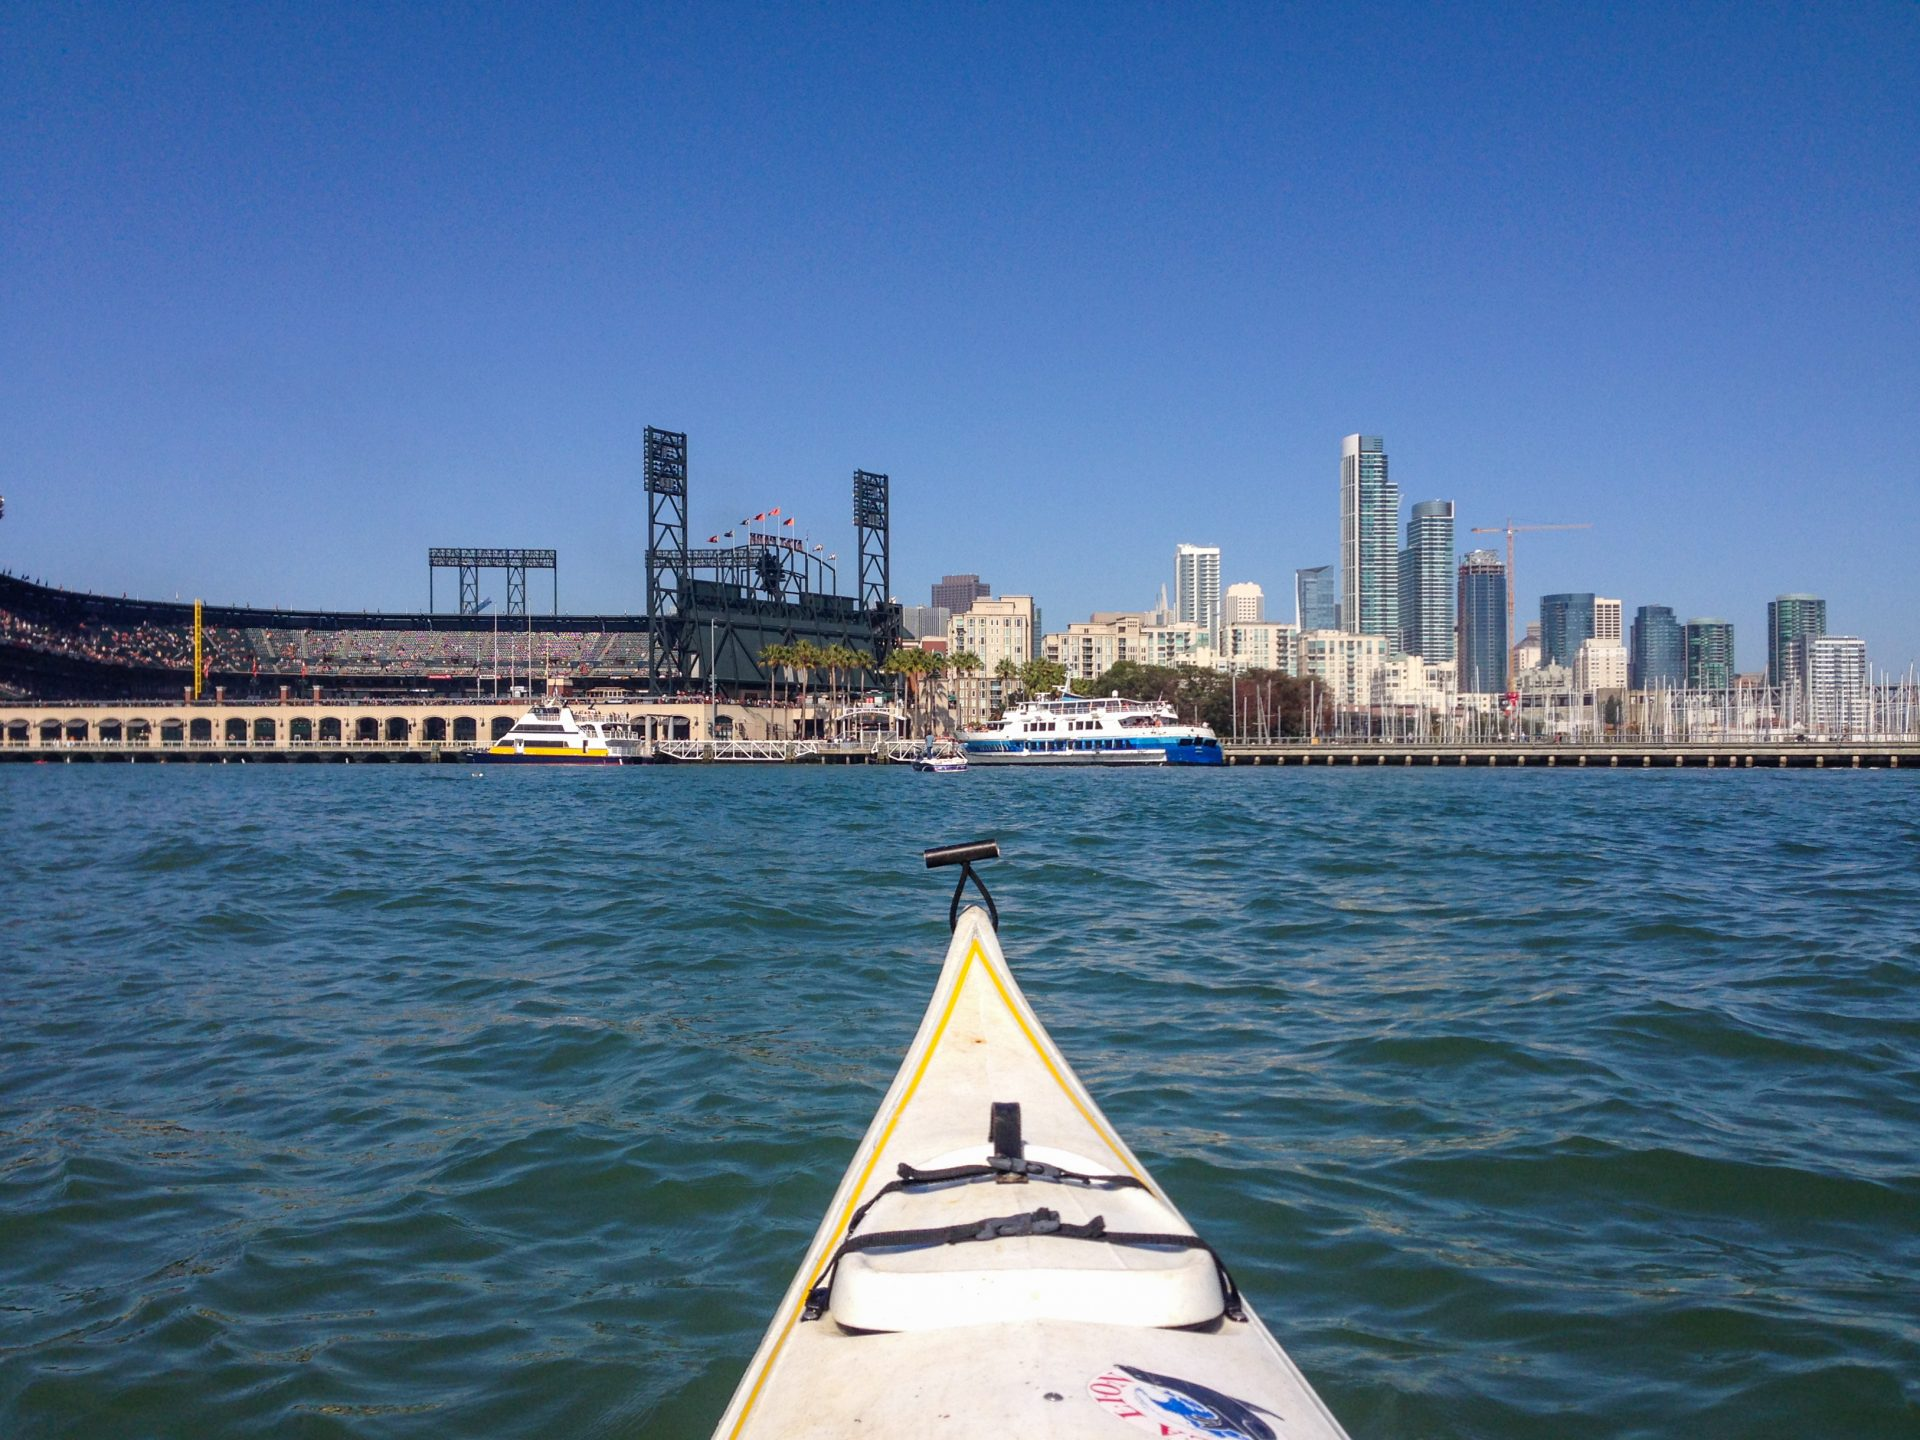 Kayak-level view of ferries going to Giants ballpark